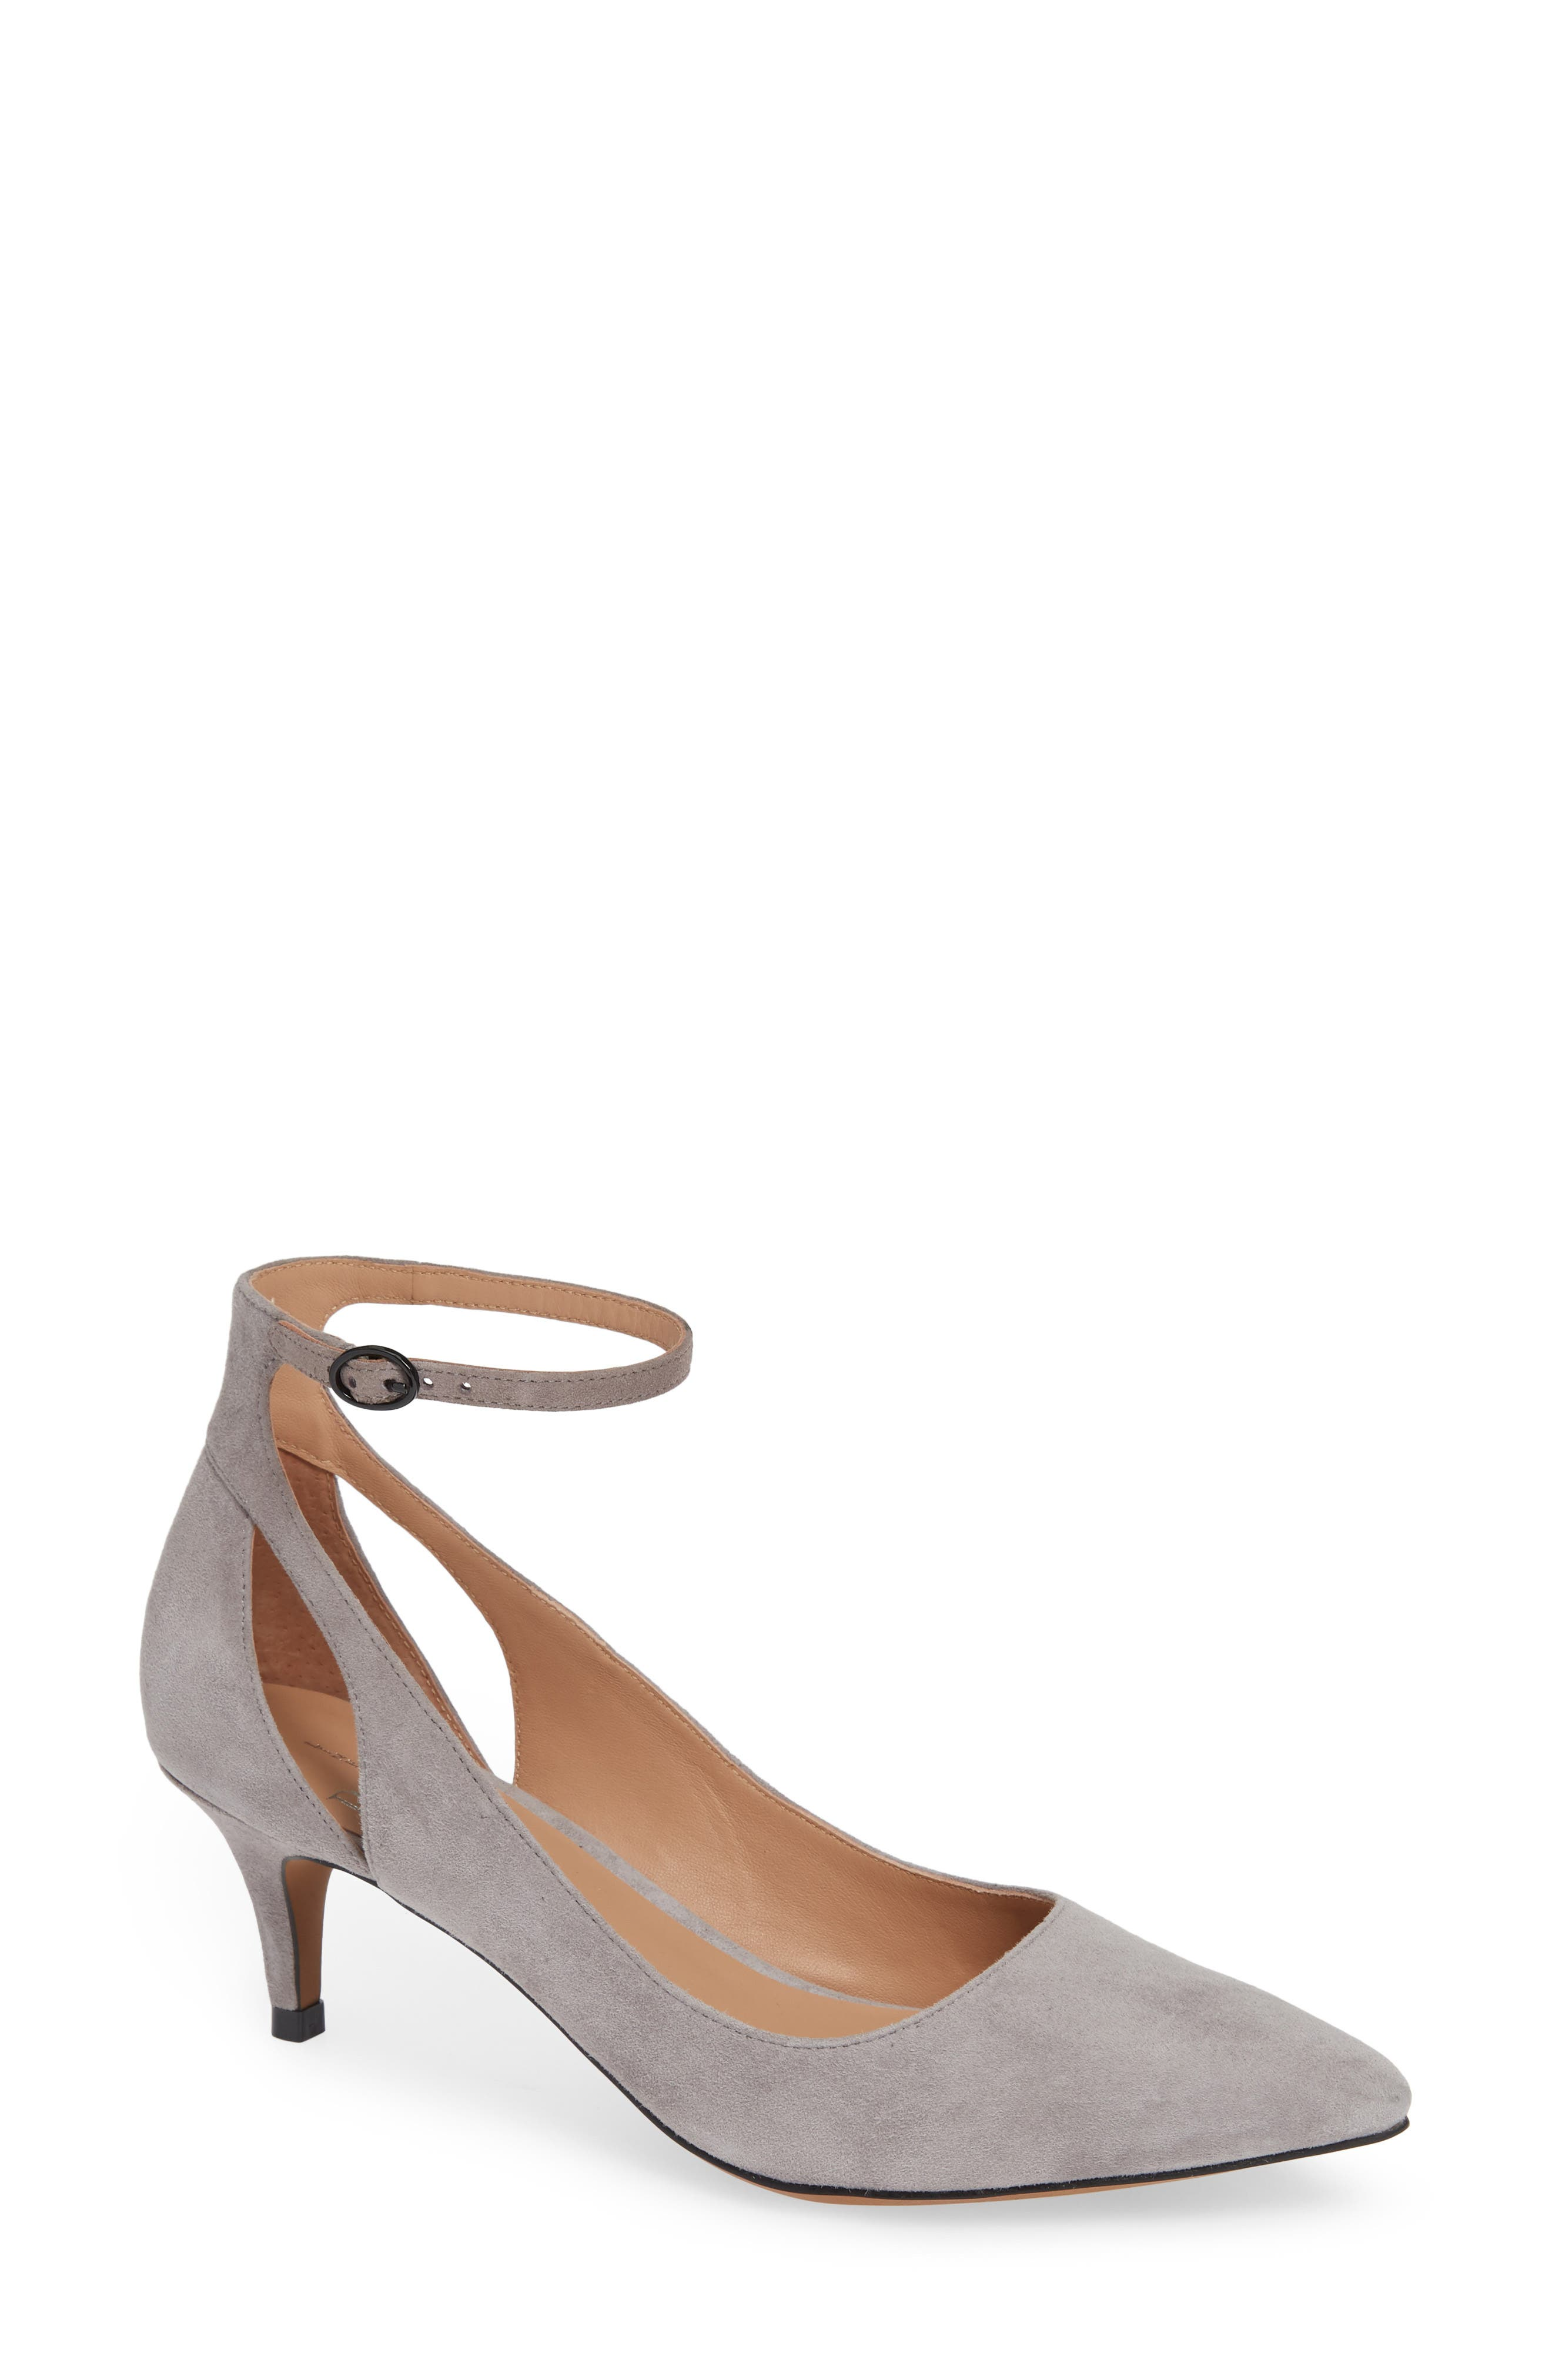 Linea Paolo Carrie Ankle Strap Pump, Grey